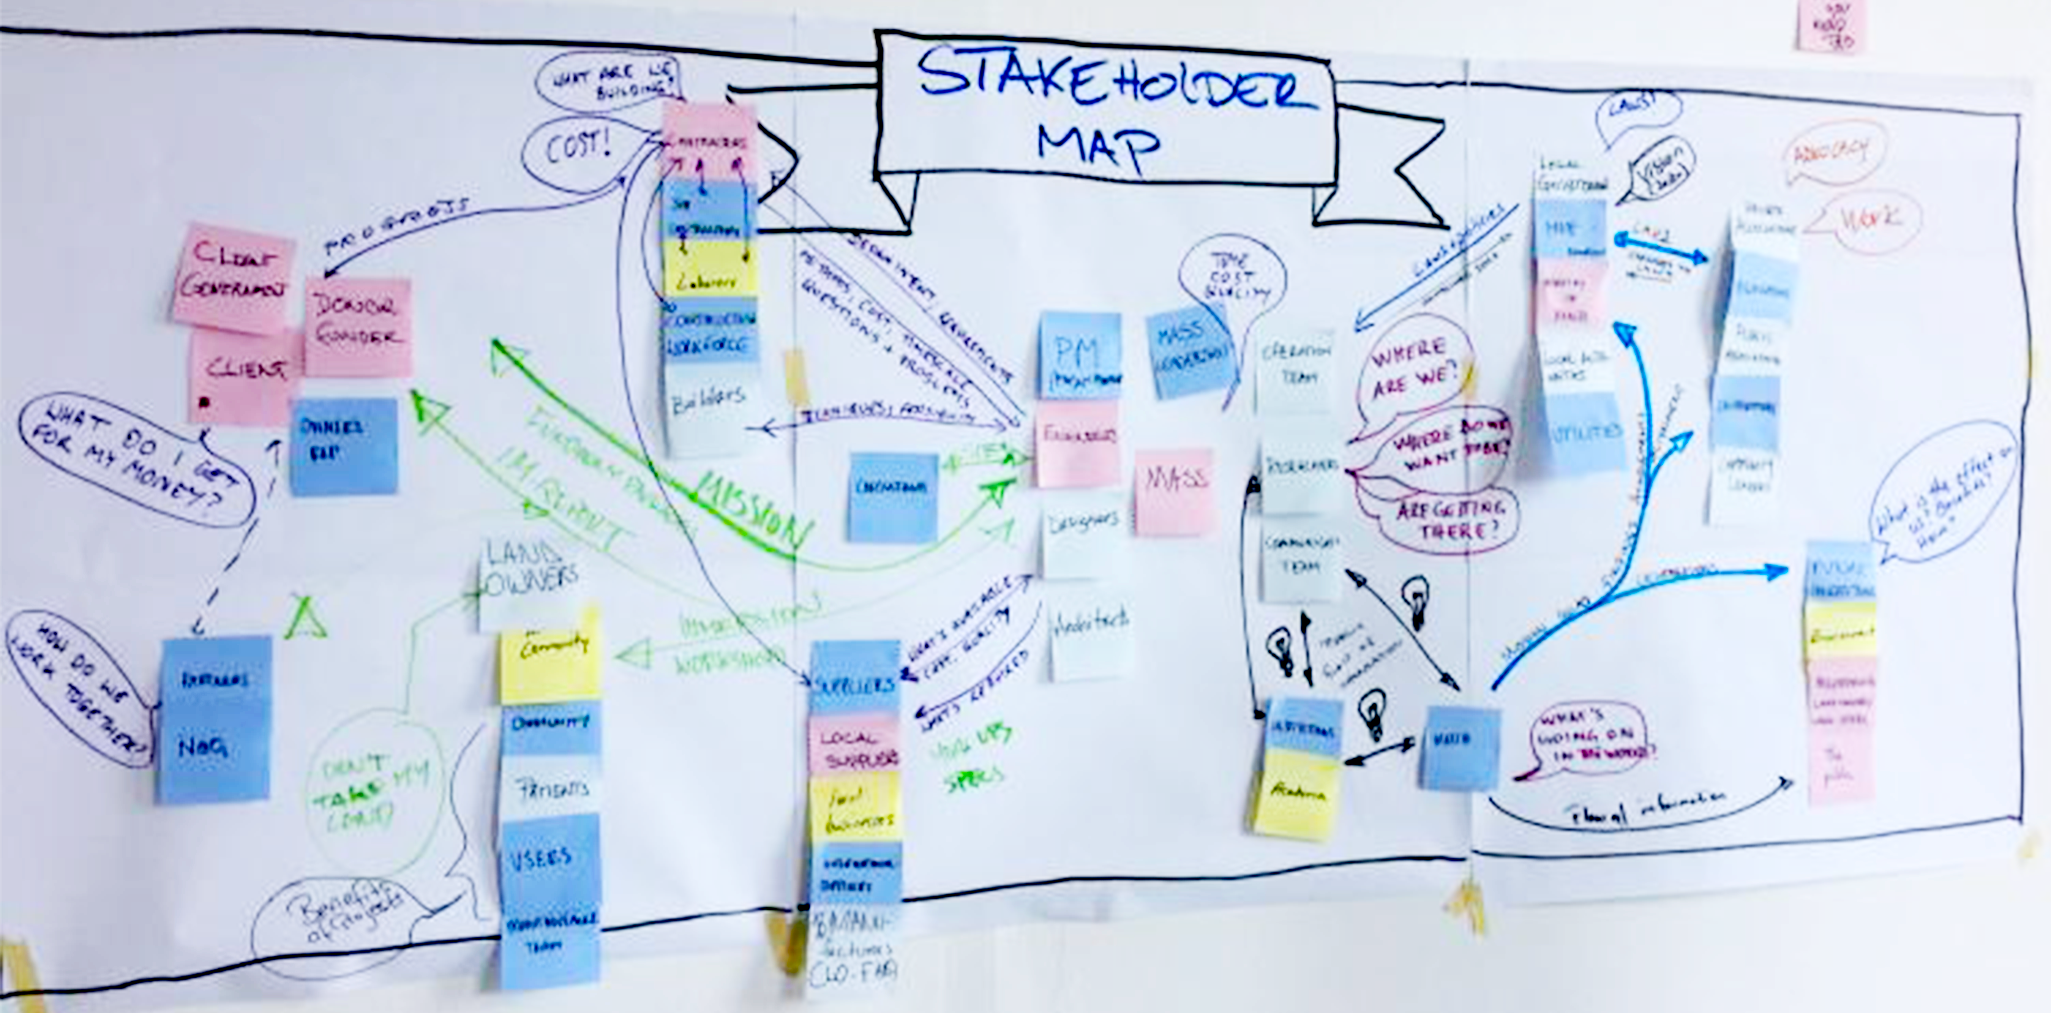 Stakeholder map.png